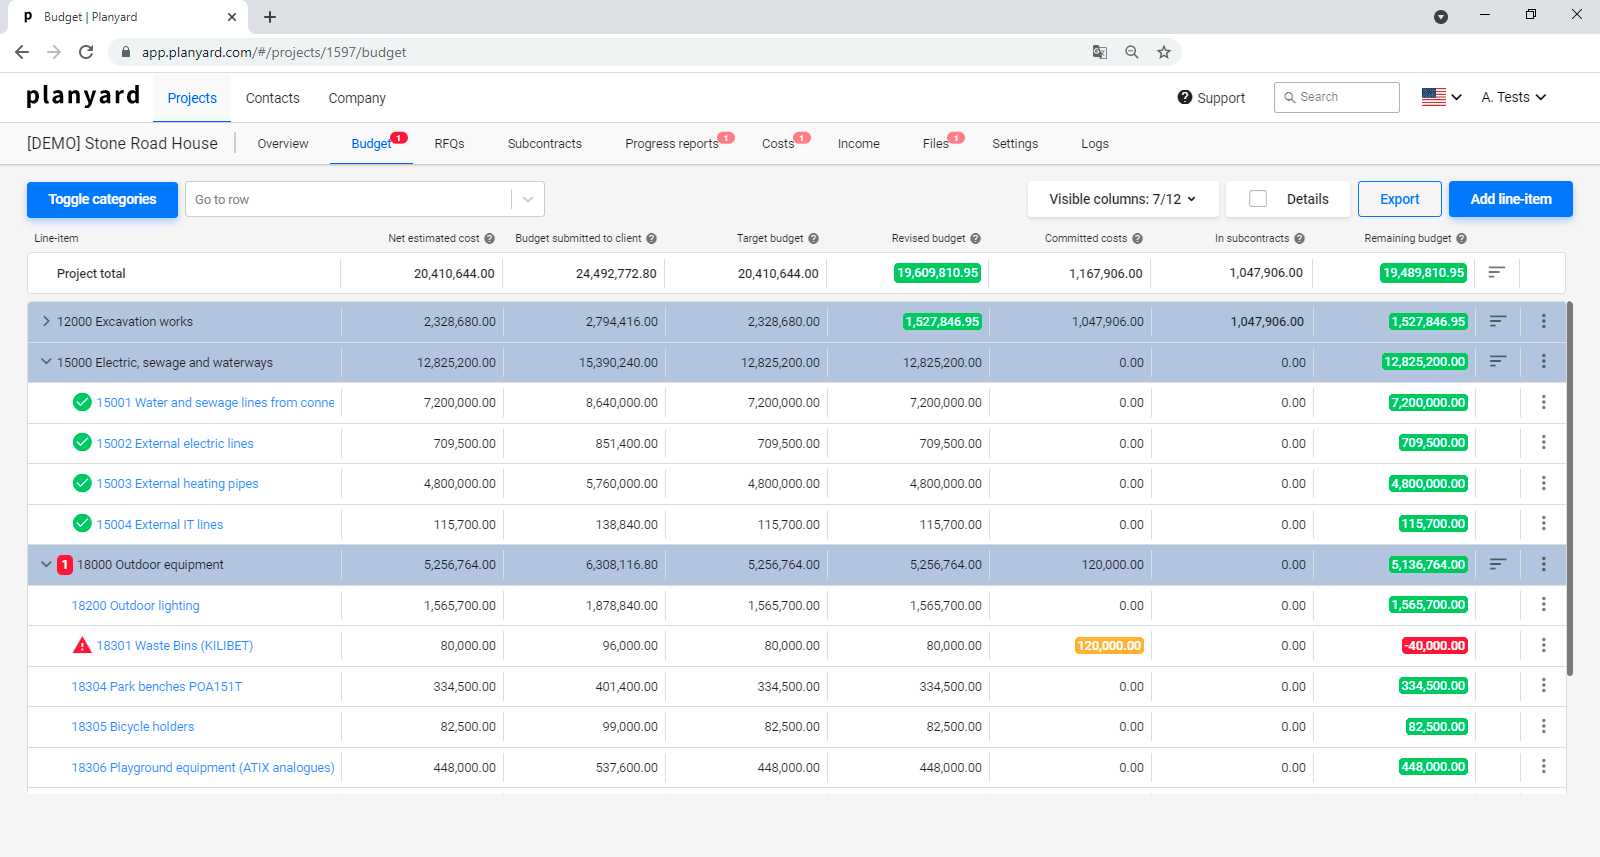 Planyard budget view - track everthing from estimated units and costs to approving the final invoice in one place.